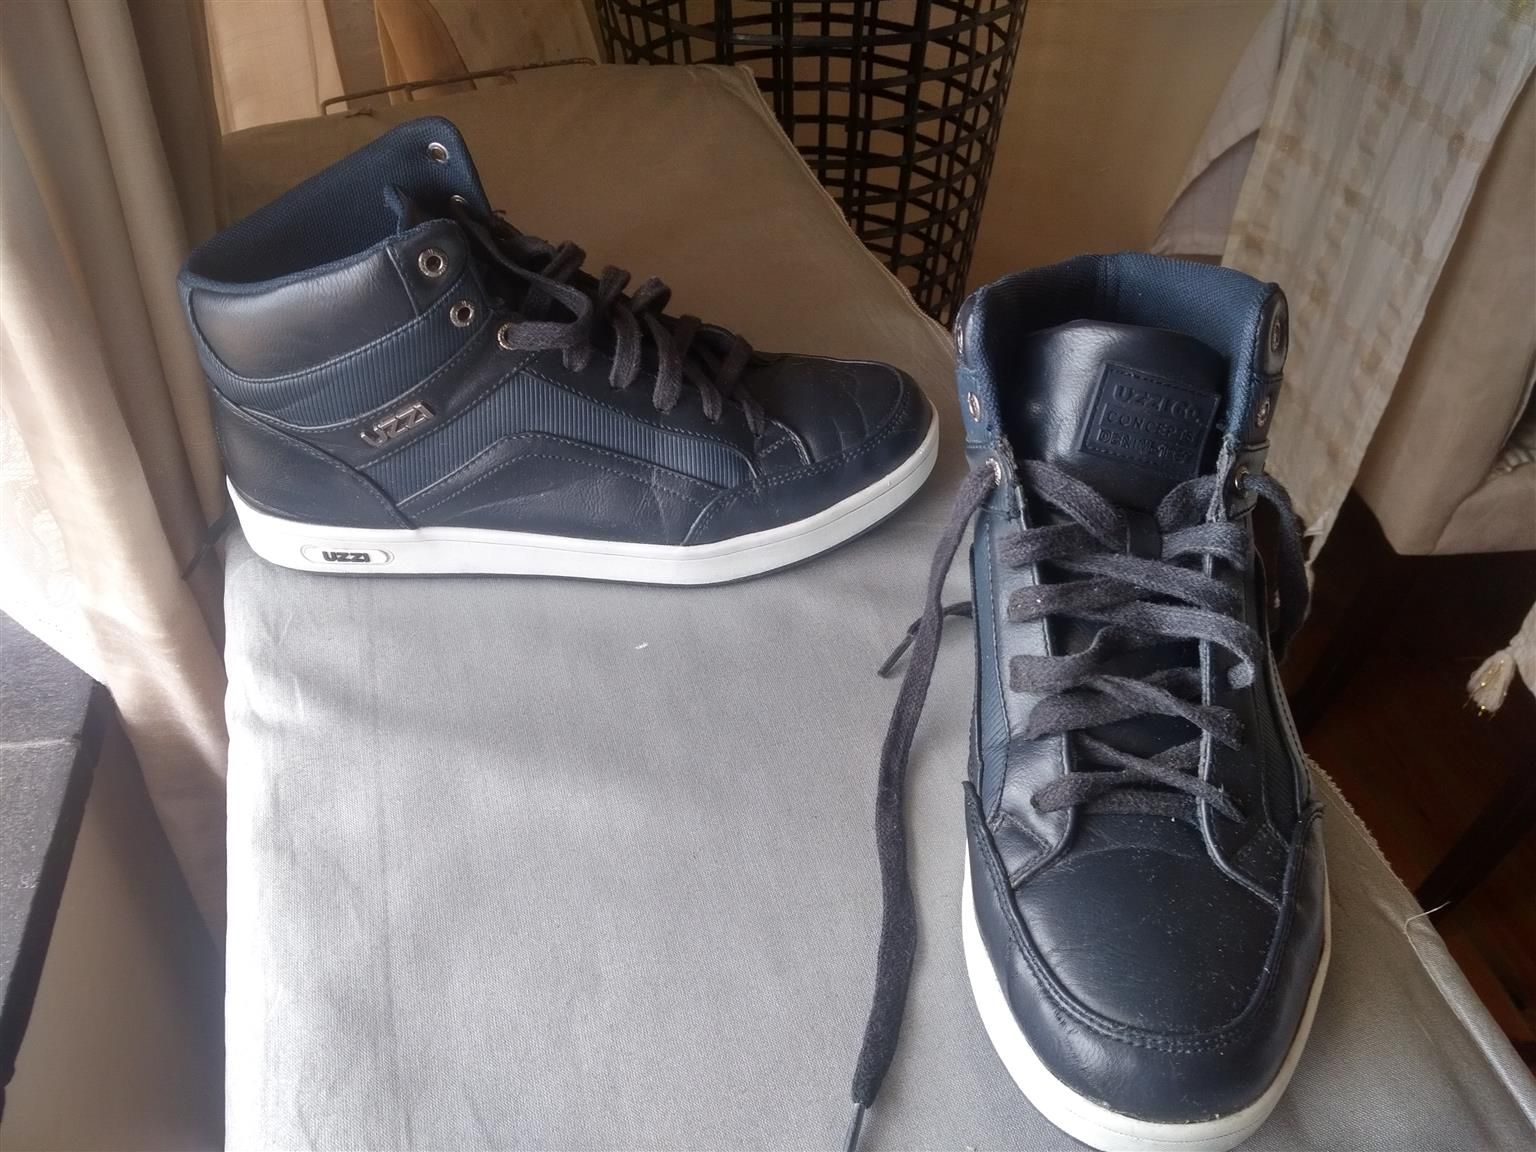 A pair of blue Uzzi shoes for men, size 8 bought on 25 October and worn only about 8 times since then. R200 negotiable.